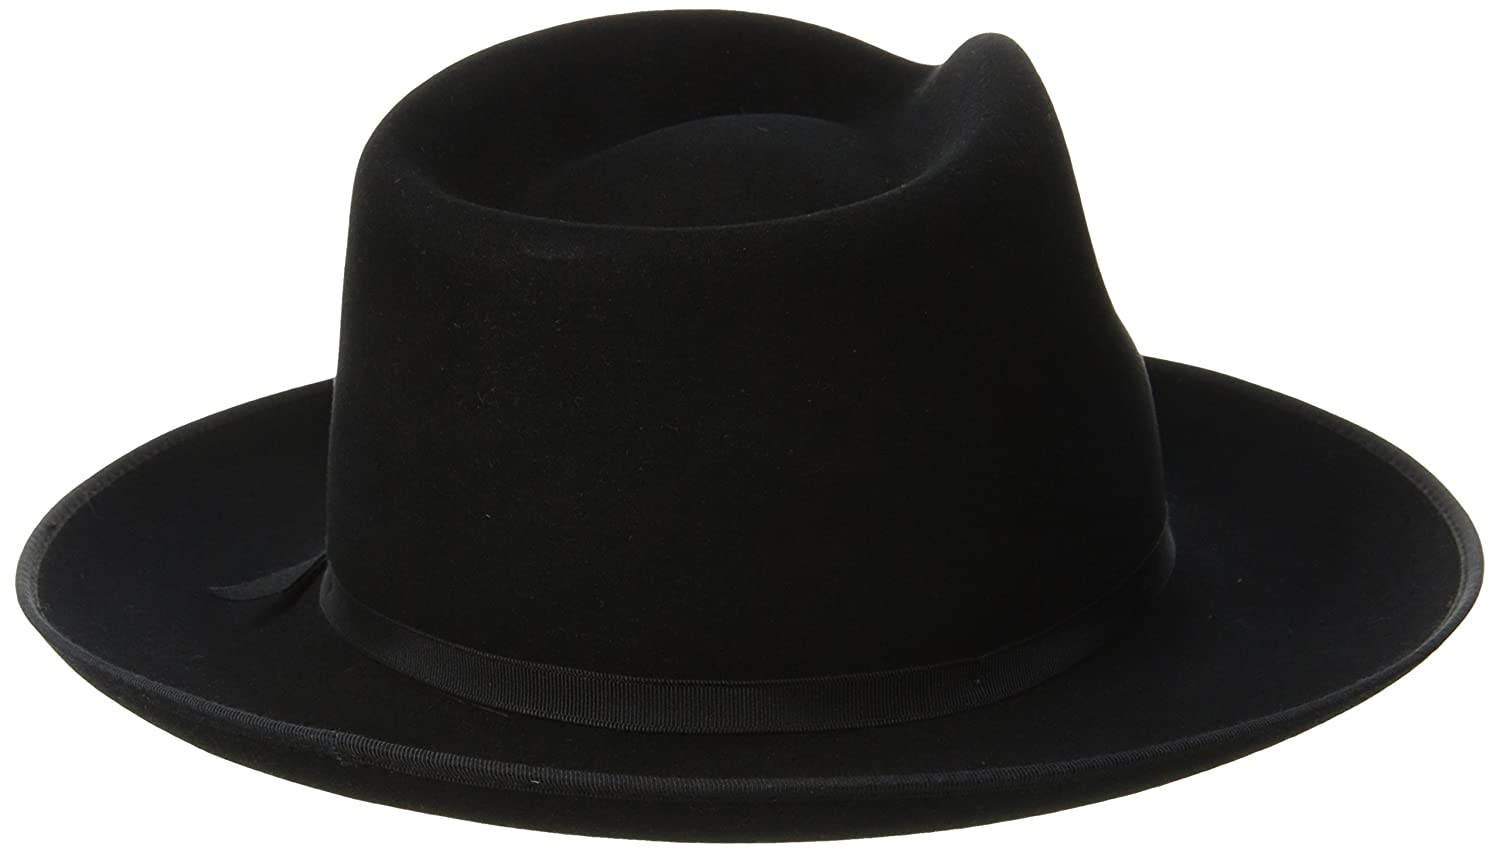 7506a3480a1be Stetson Men s Stratoliner Royal Quality Fur Felt Hat at Amazon Men s  Clothing store